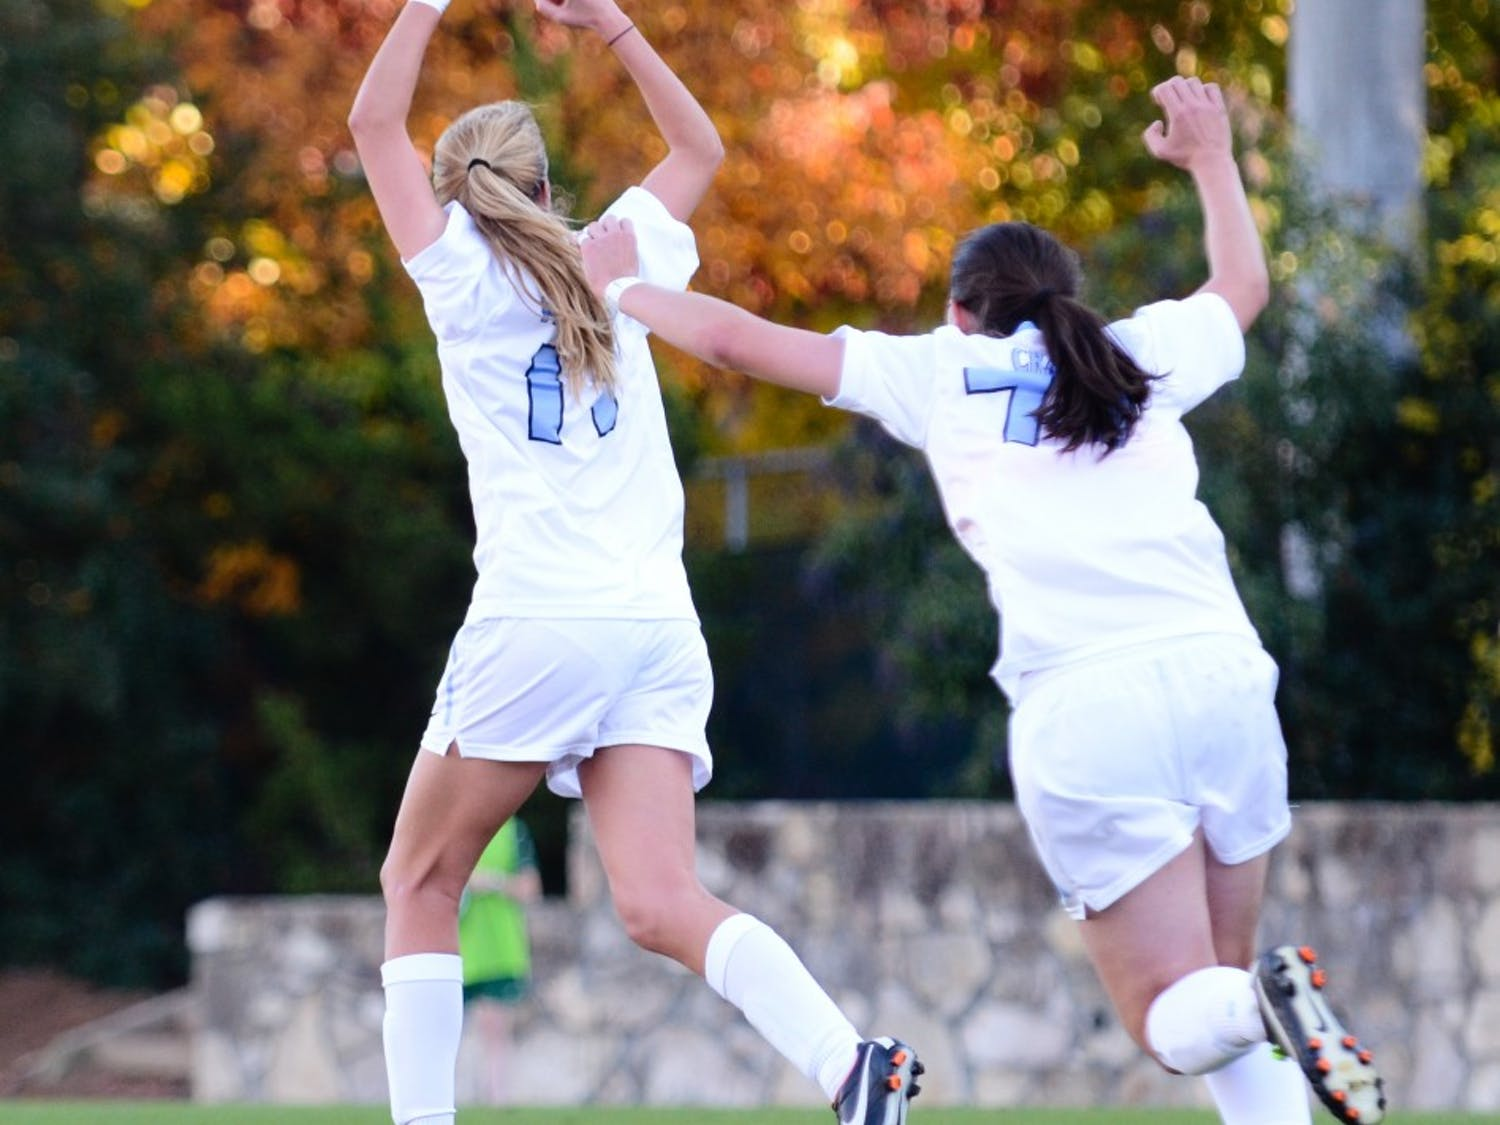 Kelly McFarlane (left) celebrates with teammate Rebecca Crabb (rigt). UNC defeated William and Mary 4-1 in the first round of the NCAA Tournament at Fetzer Field in Chapel Hill, NC.